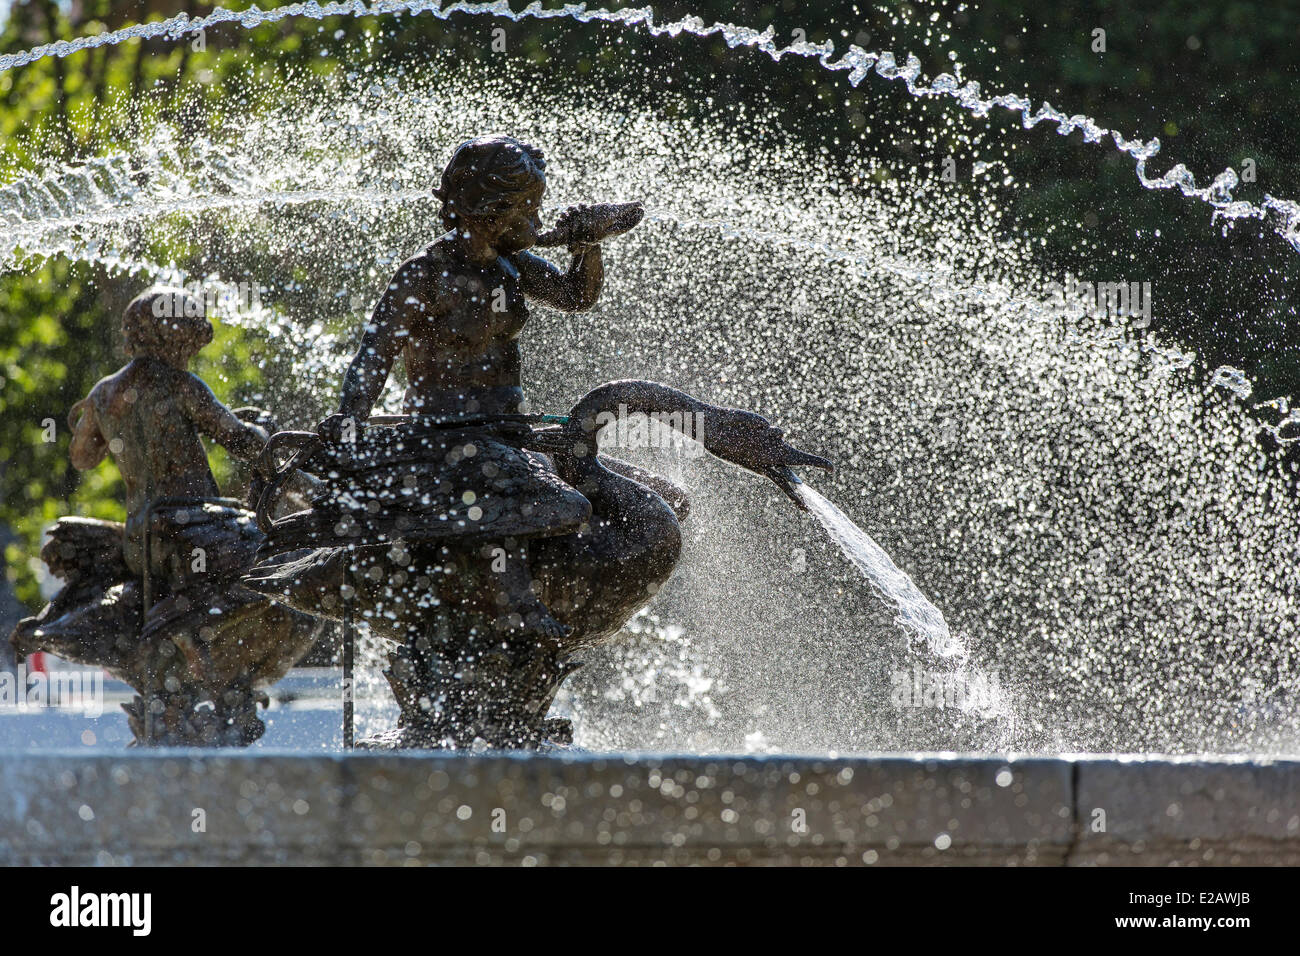 France, Bouches du Rhone, Aix en Provence, the Rotonde fountain - Stock Image